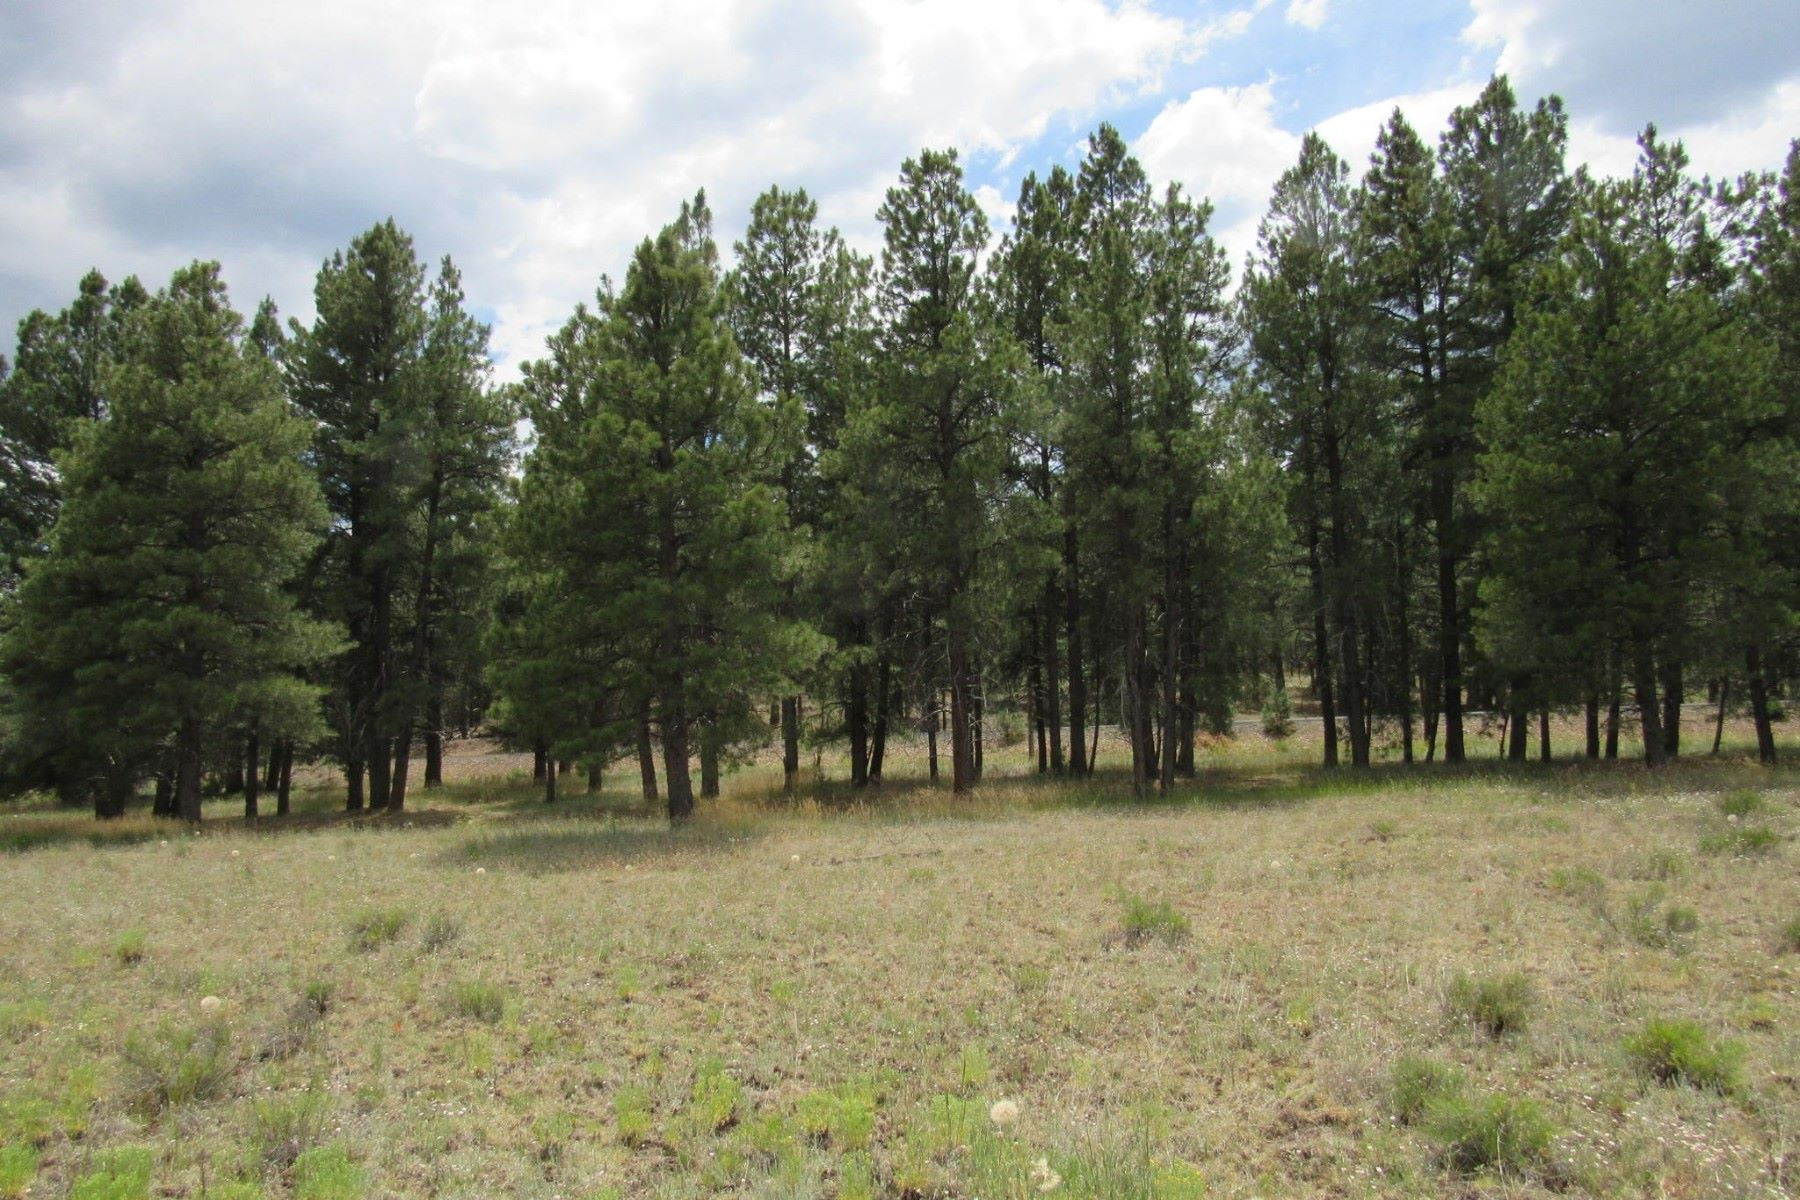 Land for Sale at Williams Rural East 737 N Cool Pines Rd Williams, Arizona 86046 United States